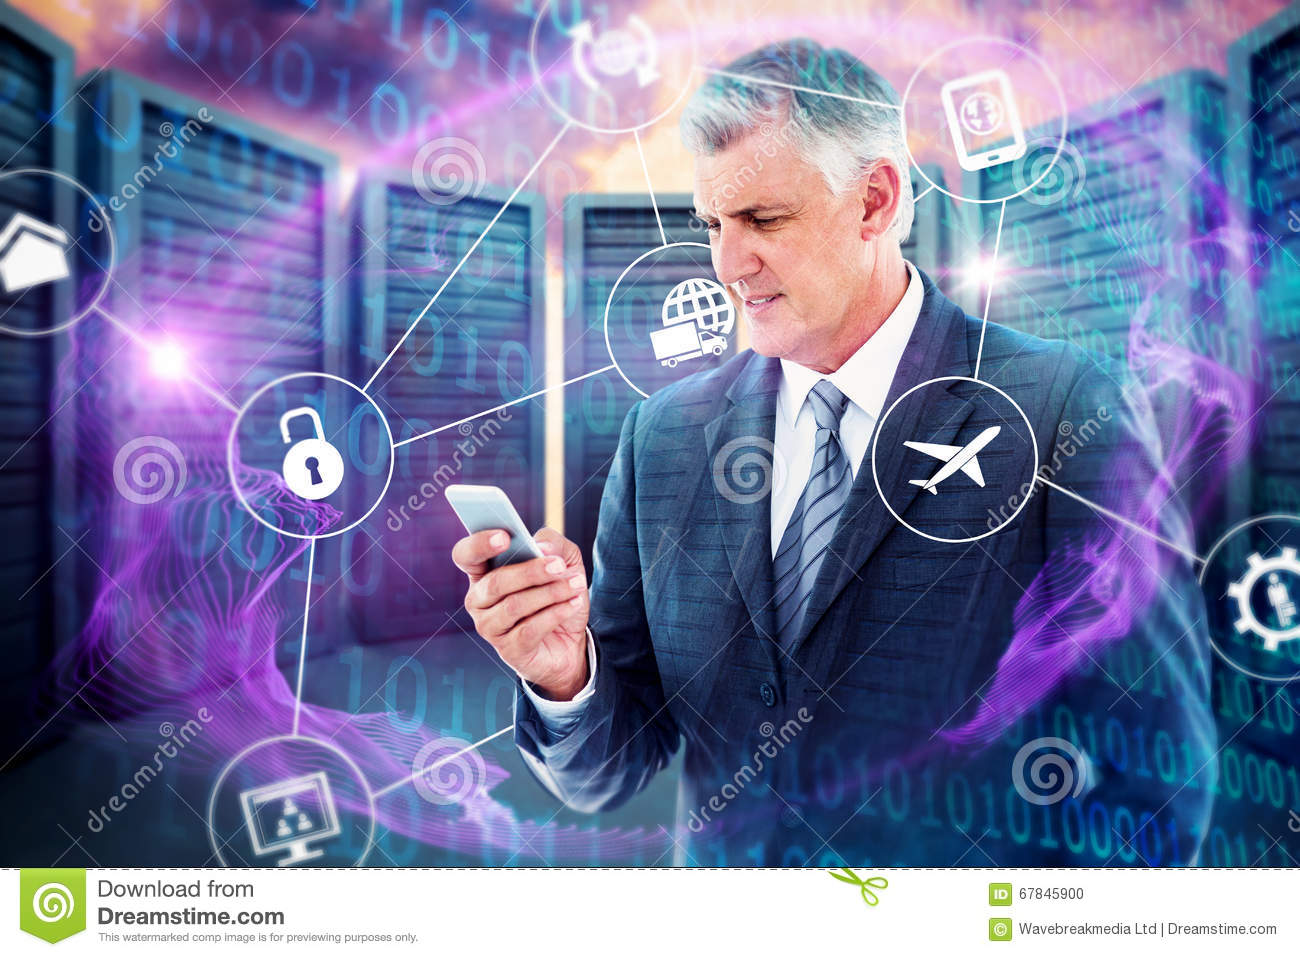 Composite image of businessman using his smartphone